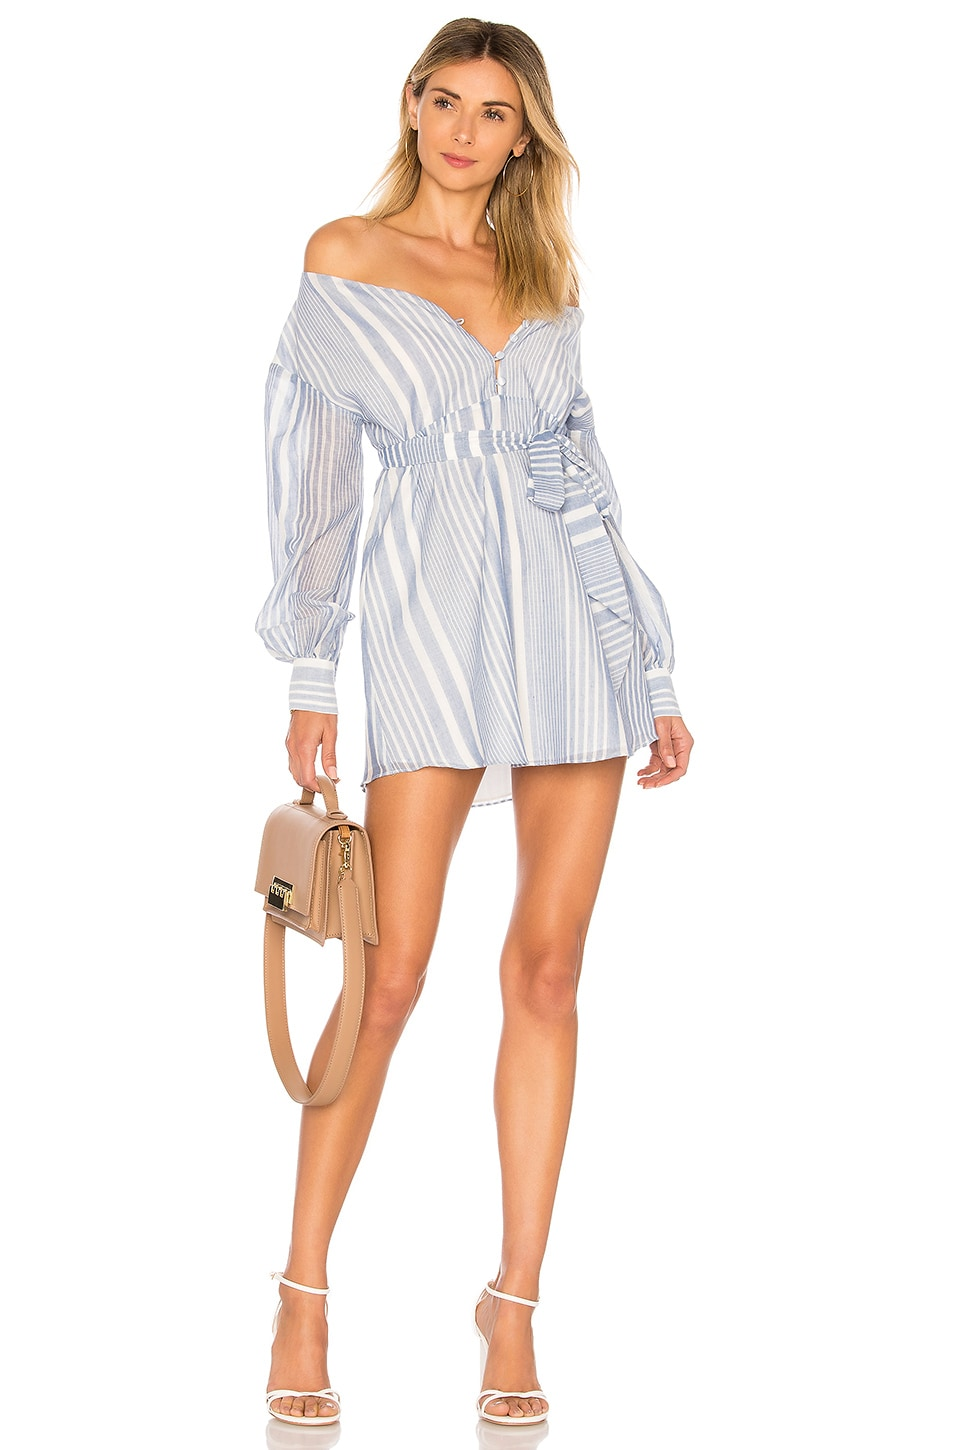 L'Academie The Frida Dress in Blue Stripe